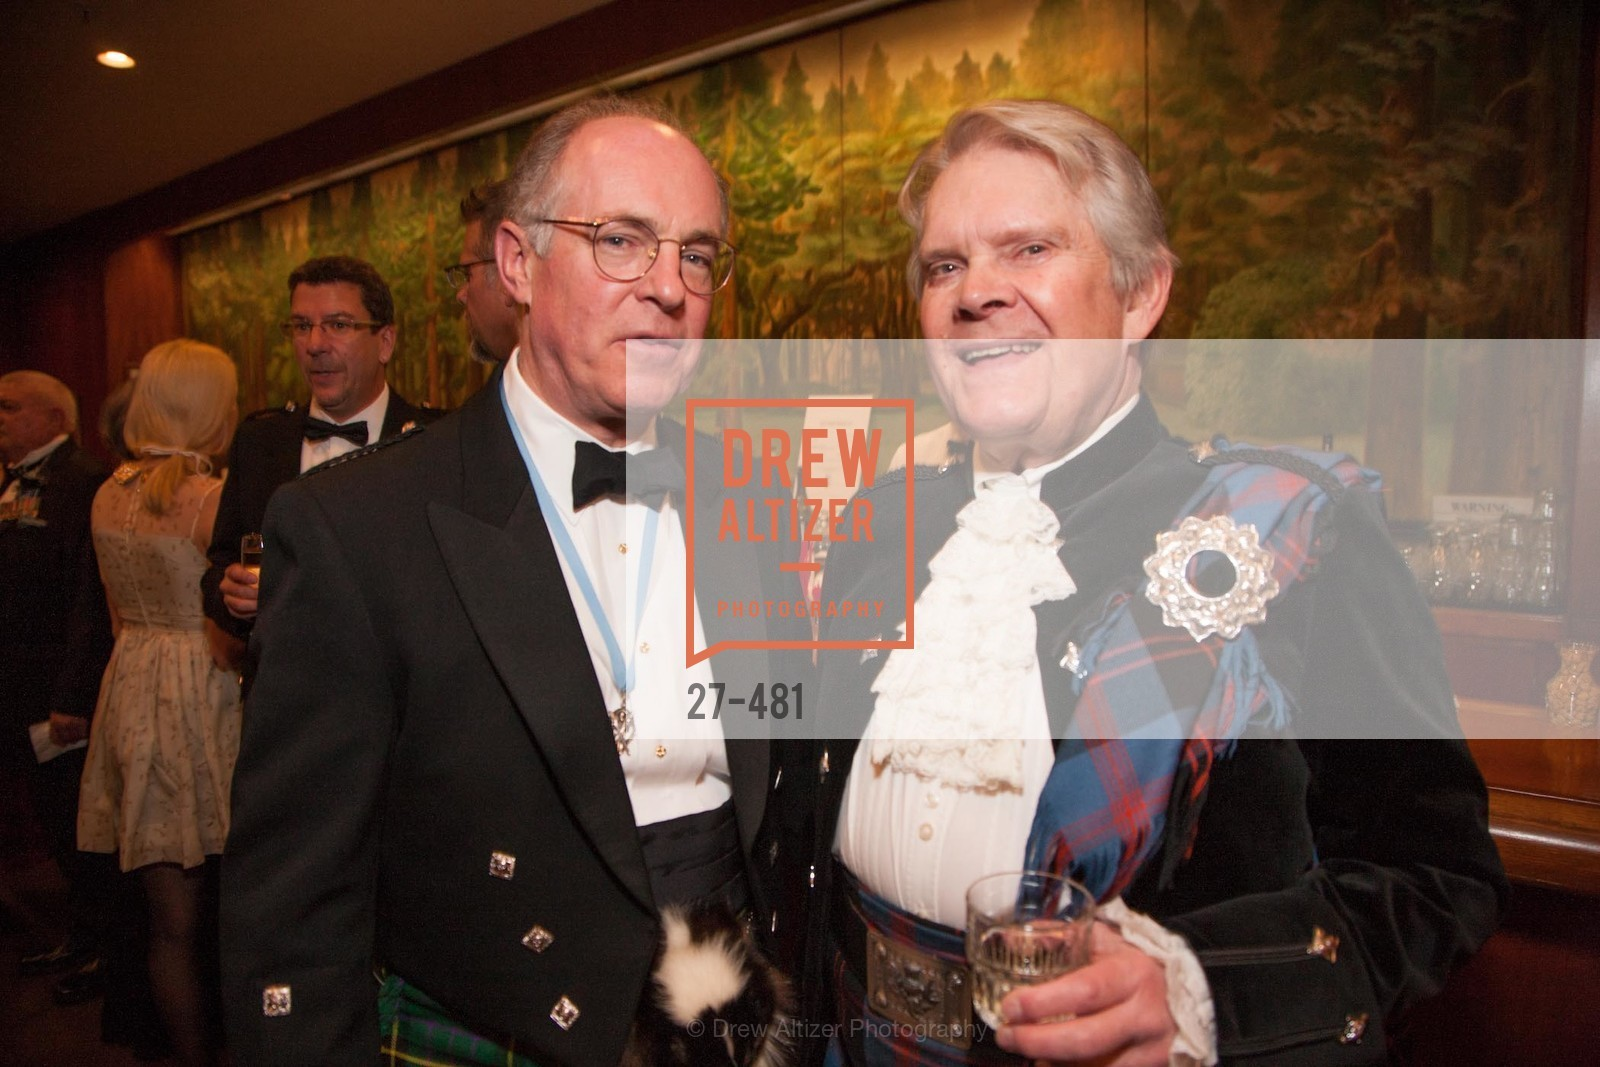 Bruce McMillan, Selby Haussermann, ST. ANDREW'S SOCIETY OF SAN FRANCISCO'S Traditional Burns Night Supper 2014, US. US, January 25th, 2014,Drew Altizer, Drew Altizer Photography, full-service agency, private events, San Francisco photographer, photographer california